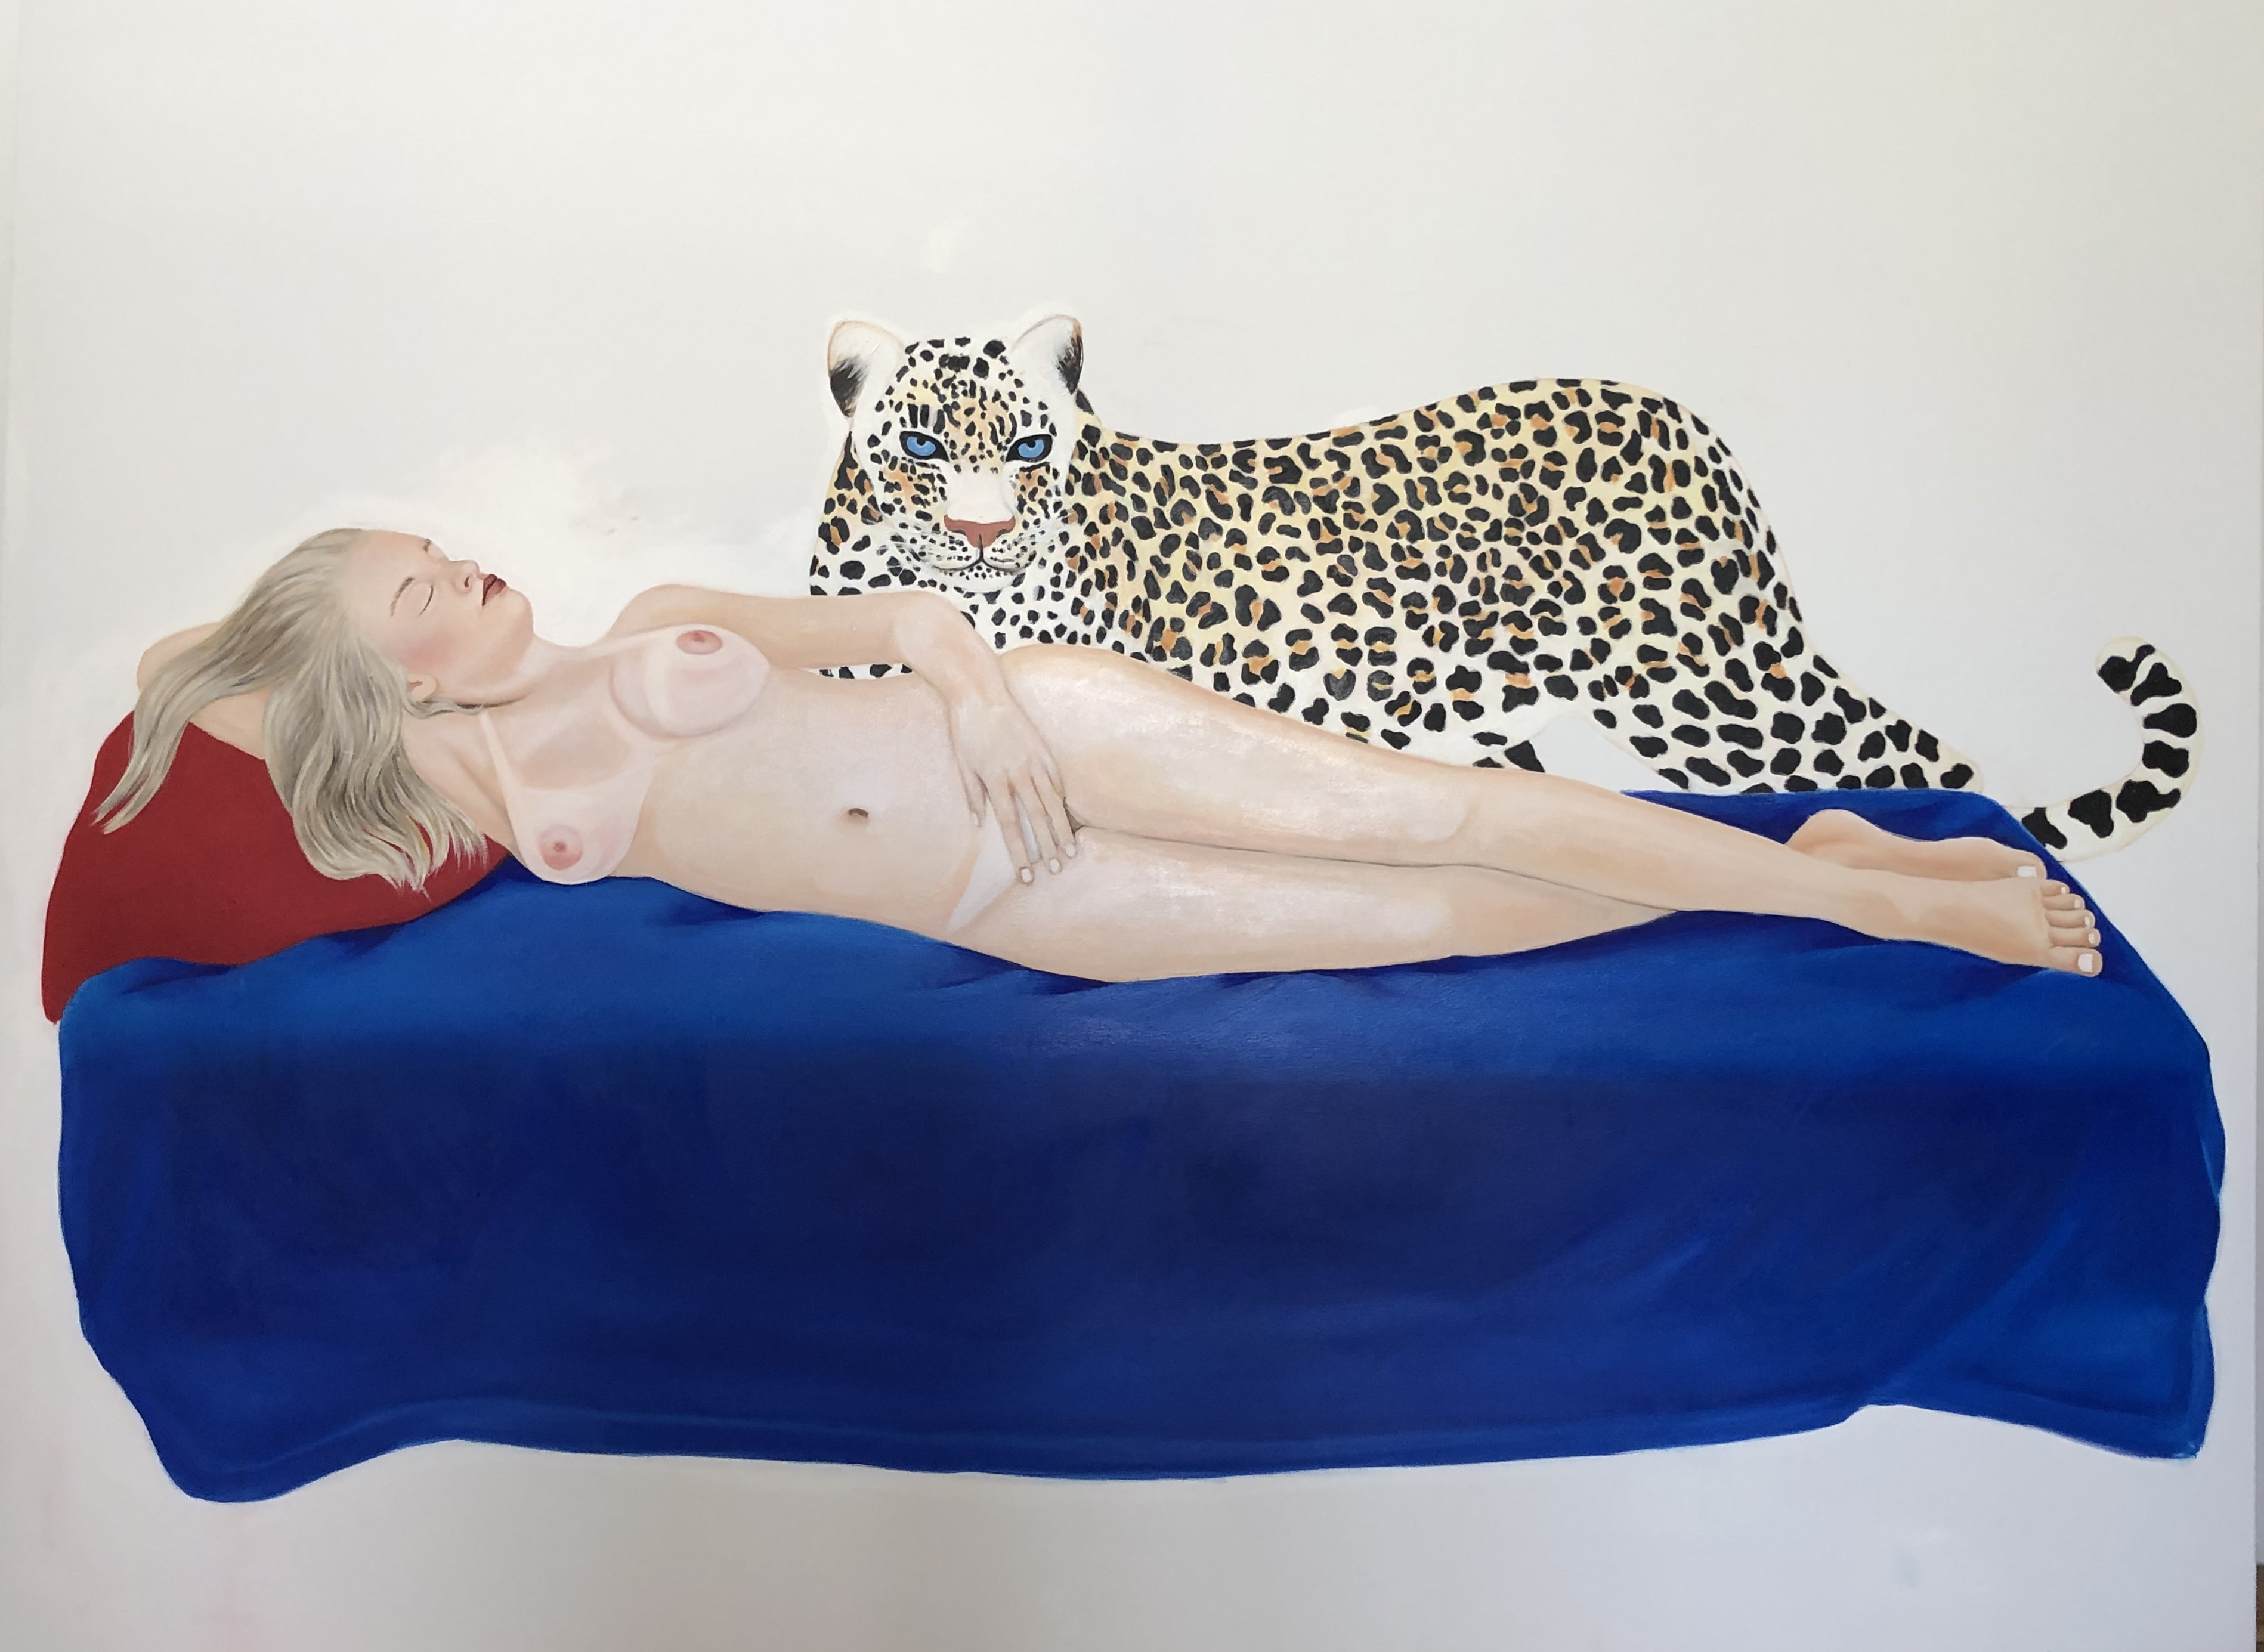 Venus after Giorgione/Two Oil on Canvas, 150 x 200 cm, 2019